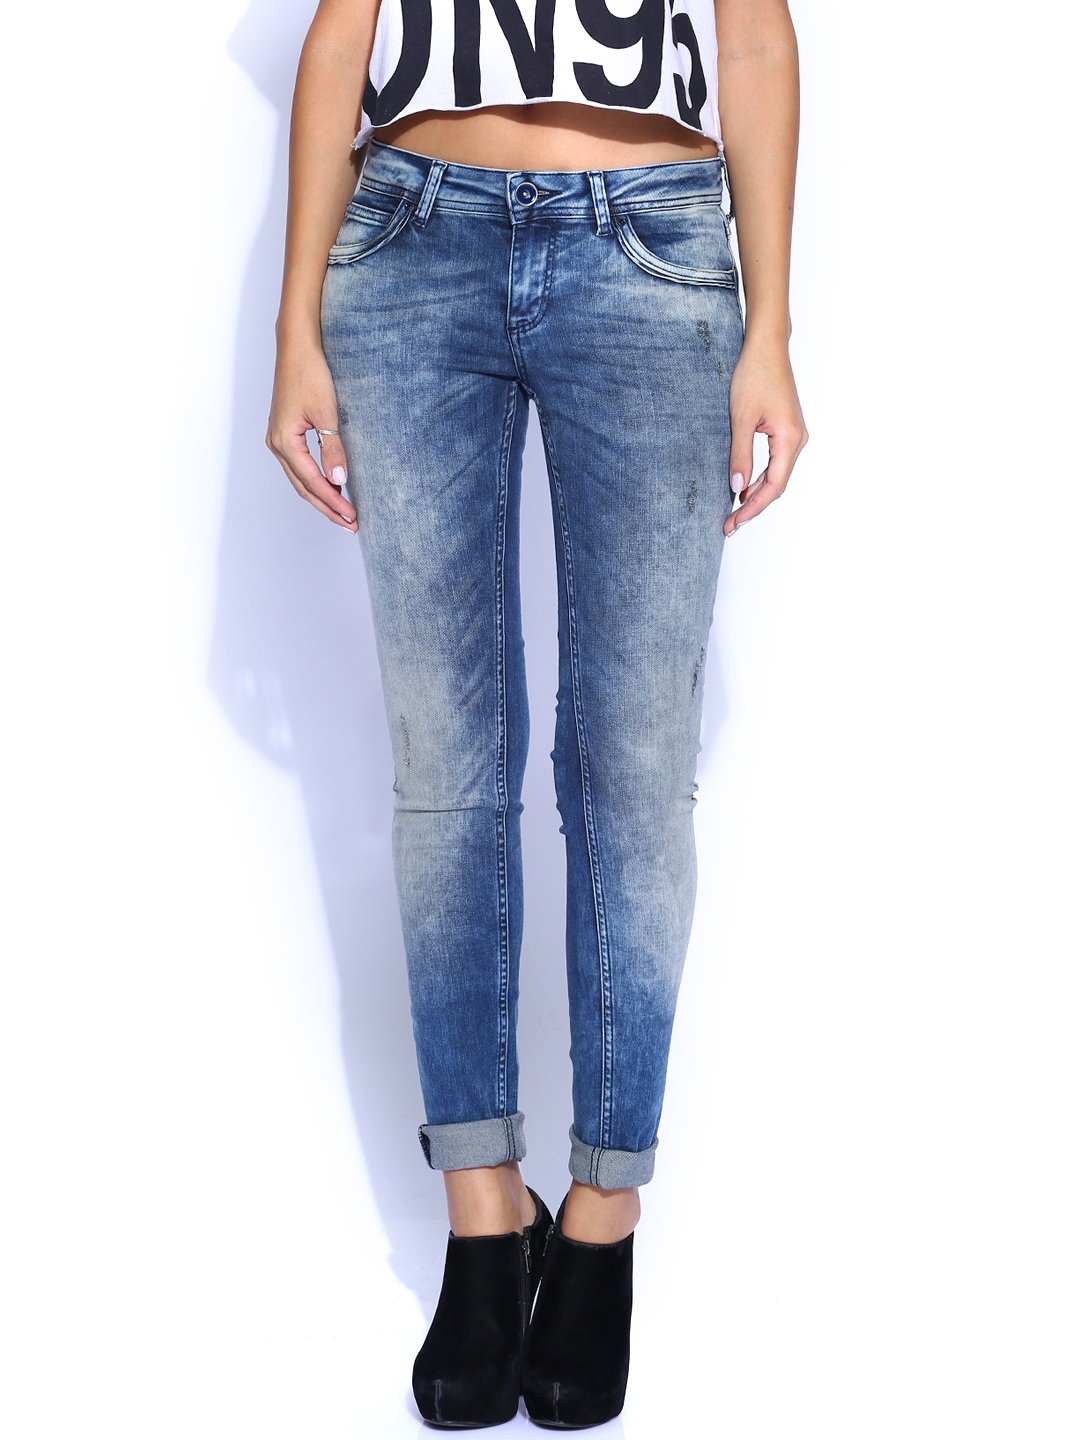 myntra vero moda blue slim fit jeans 822476 buy myntra vero moda jeans at best price online. Black Bedroom Furniture Sets. Home Design Ideas